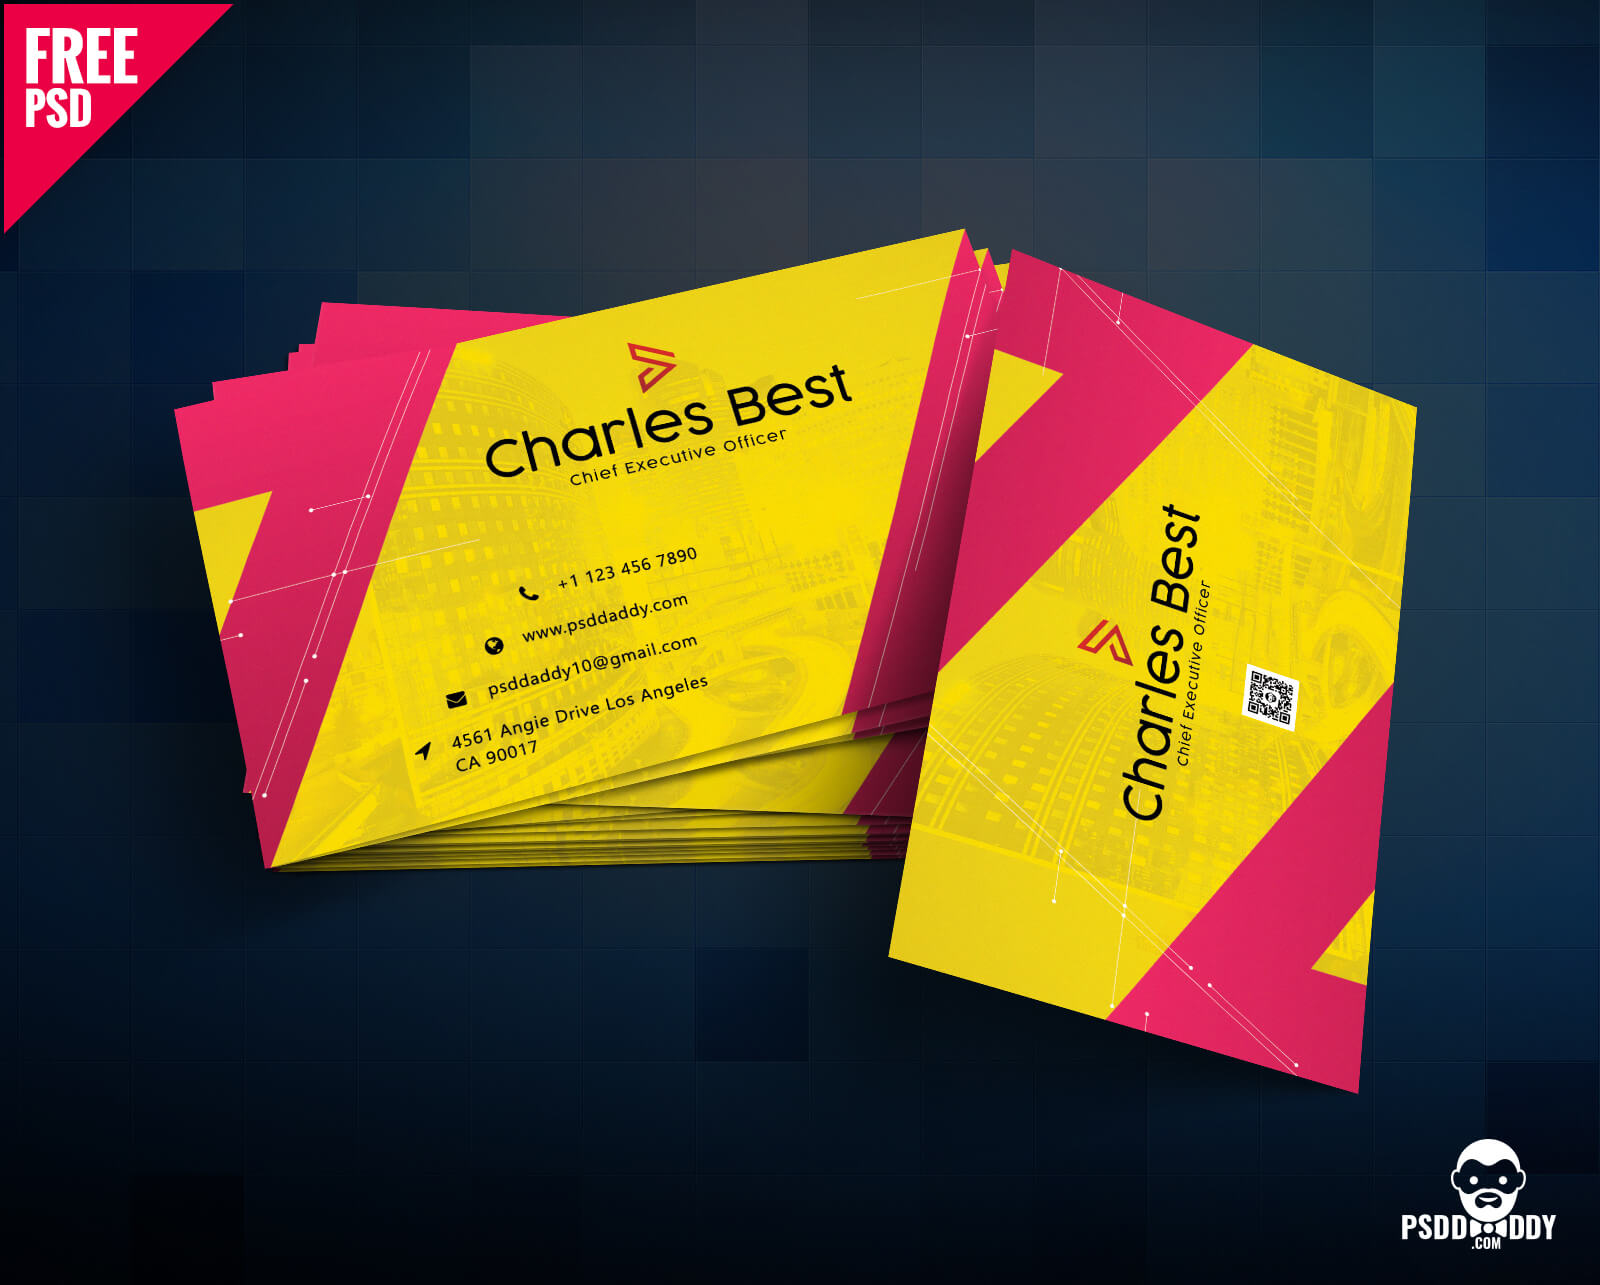 Download] Creative Business Card Free Psd | Psddaddy Inside Name Card Photoshop Template